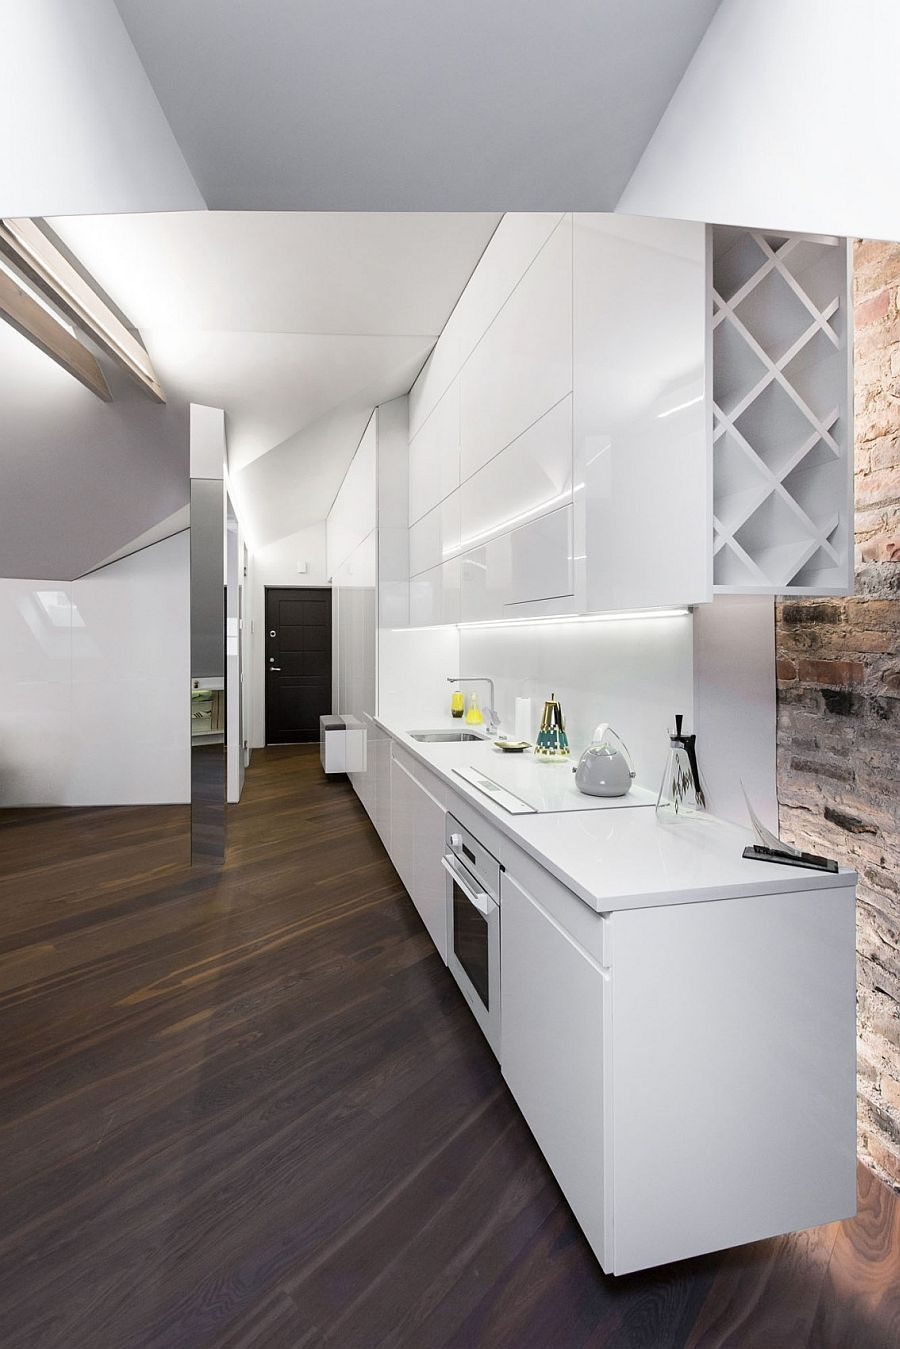 Sleek kitchen workdstation in white makes smart use of space